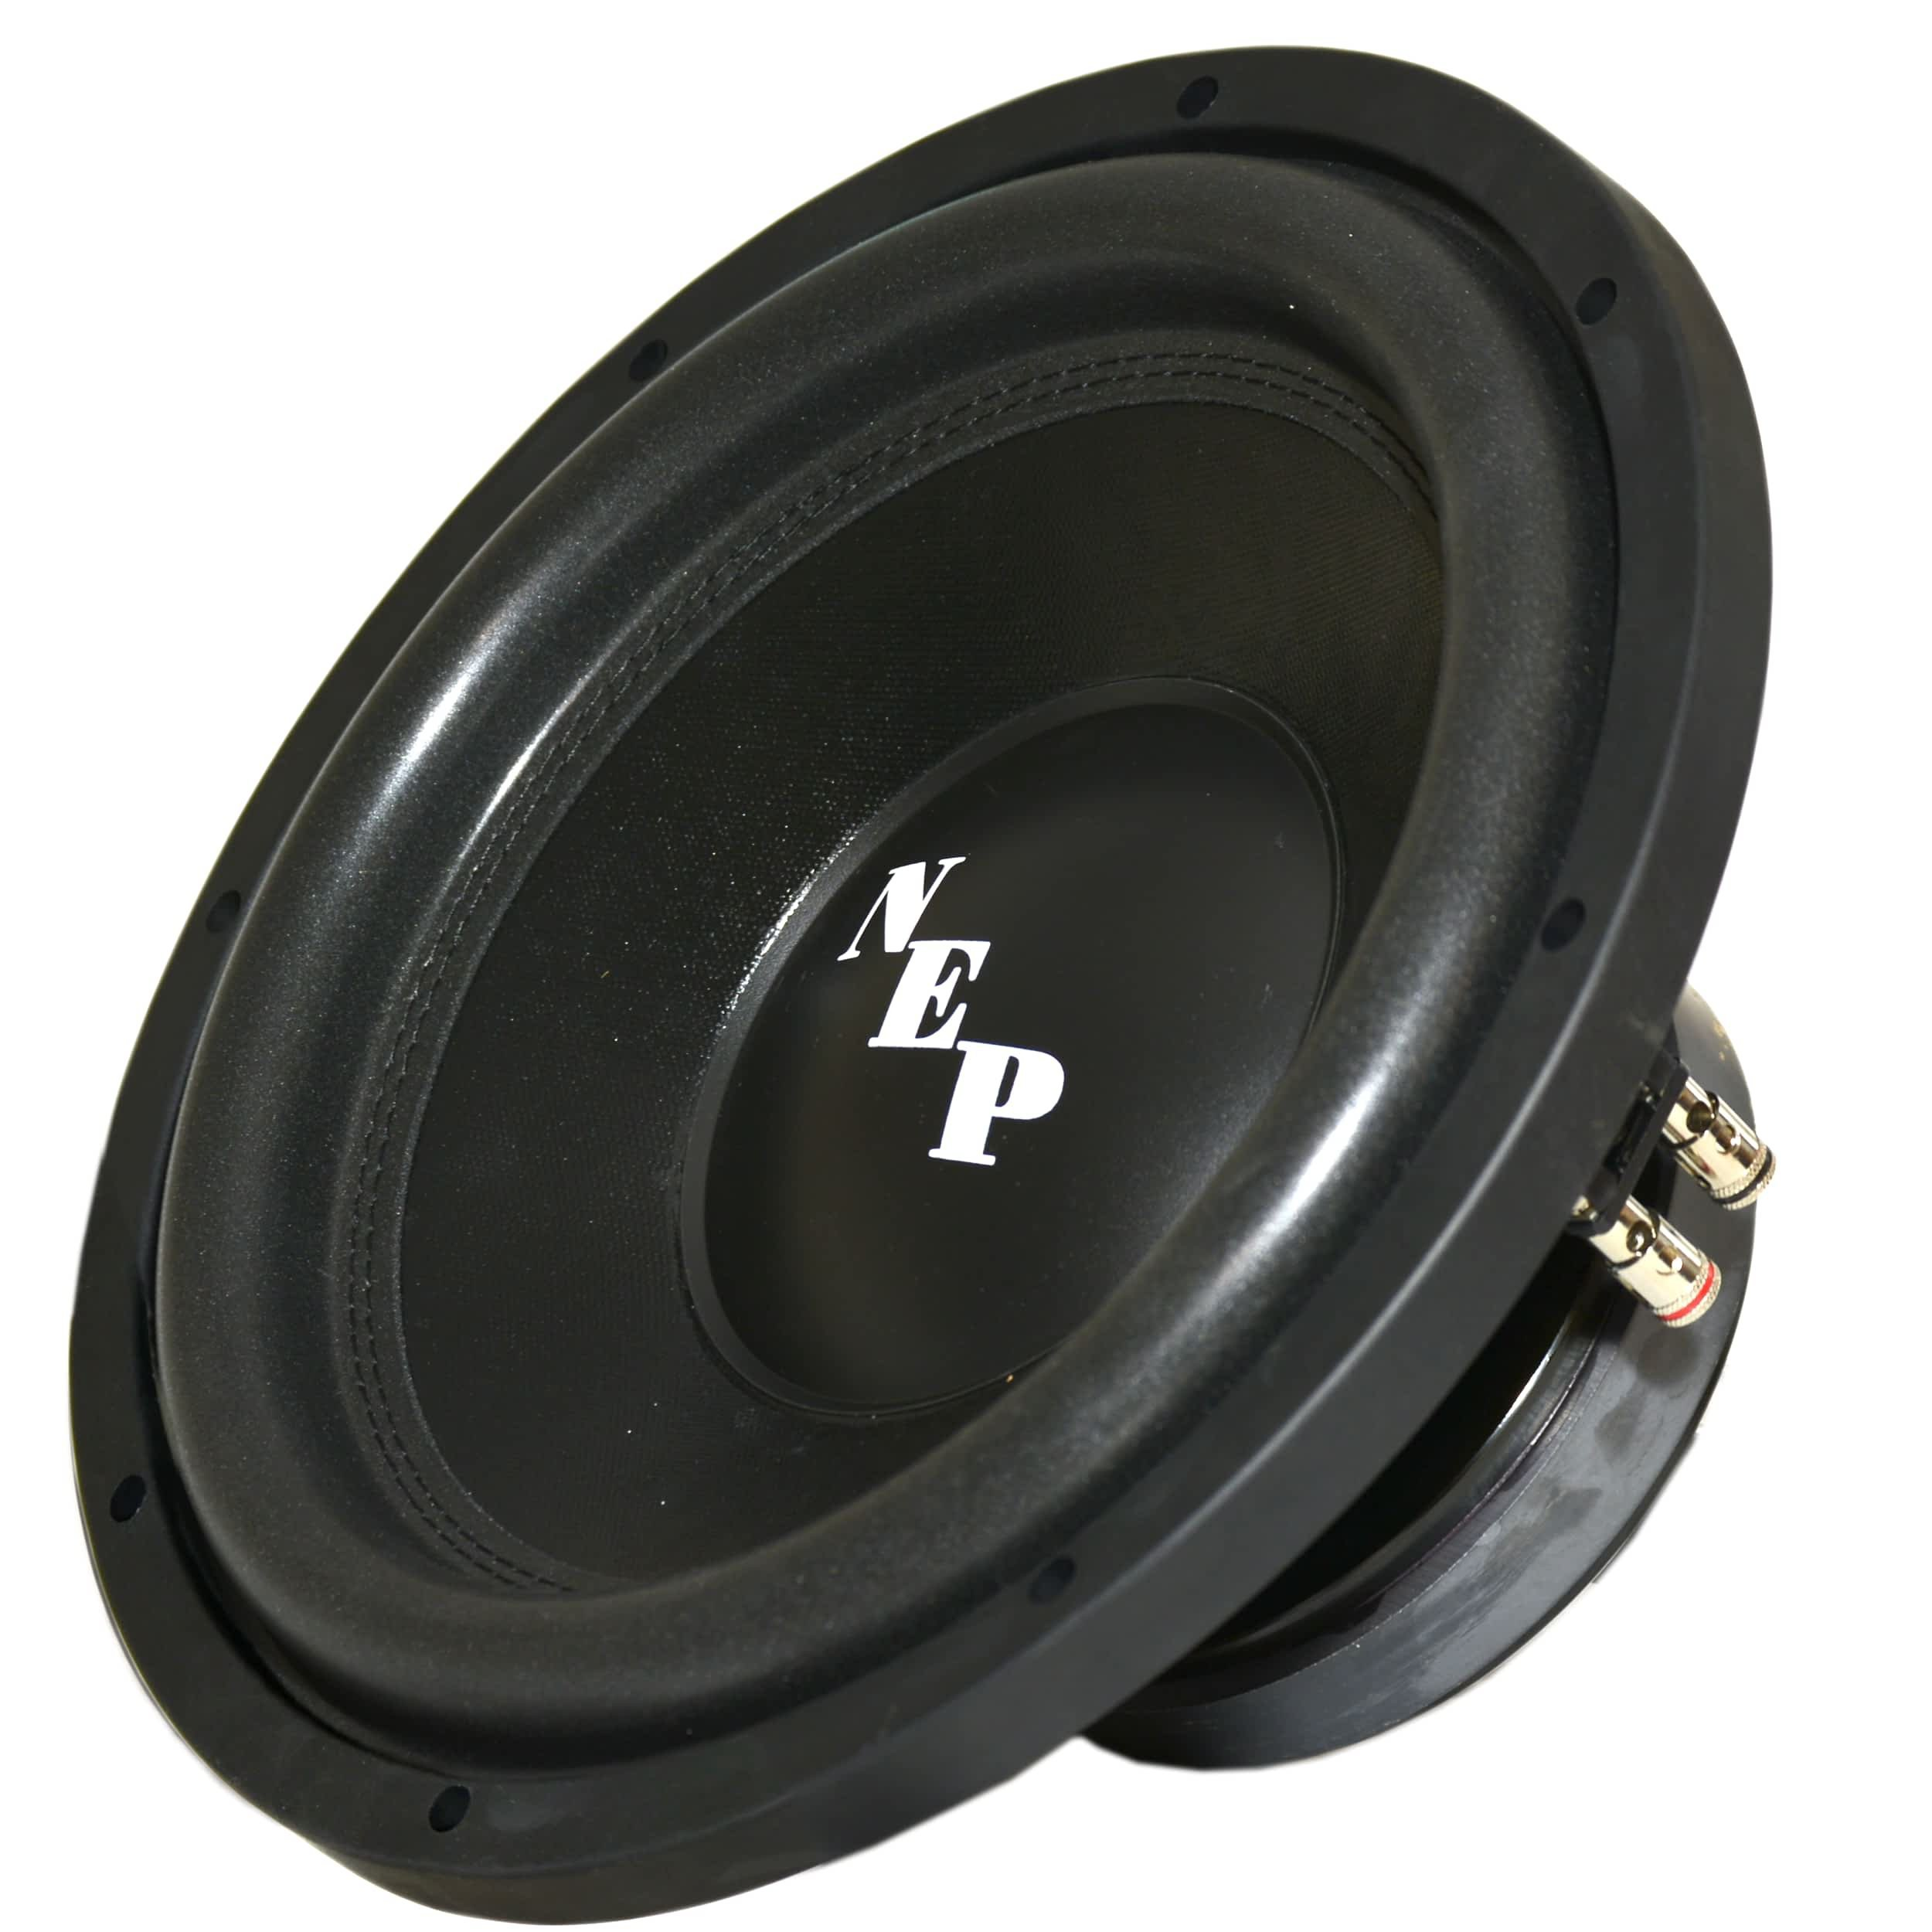 12'' Dual 4 Ohm NEP Light Subwoofer: 350W RMS - 700W Max